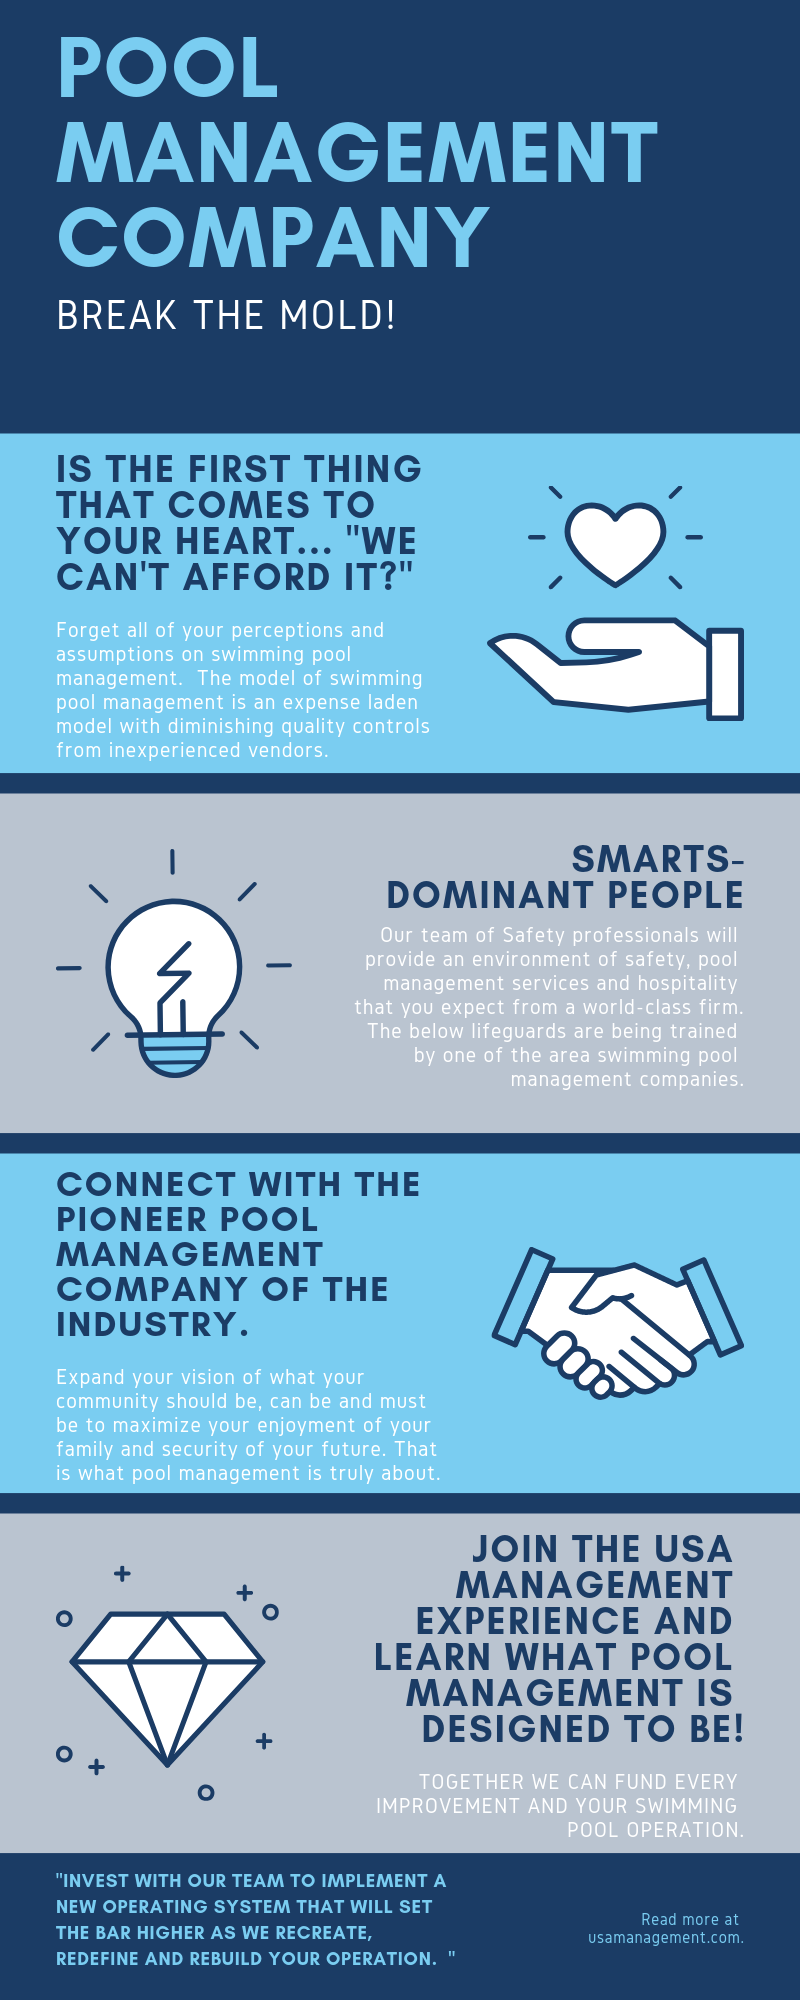 We Provide A Better Quality Of Pool Maintenance And Lifeguard Staffing For Pool Safety Join Our Pool Managemen Marketing Digital Marketing Consulting Business